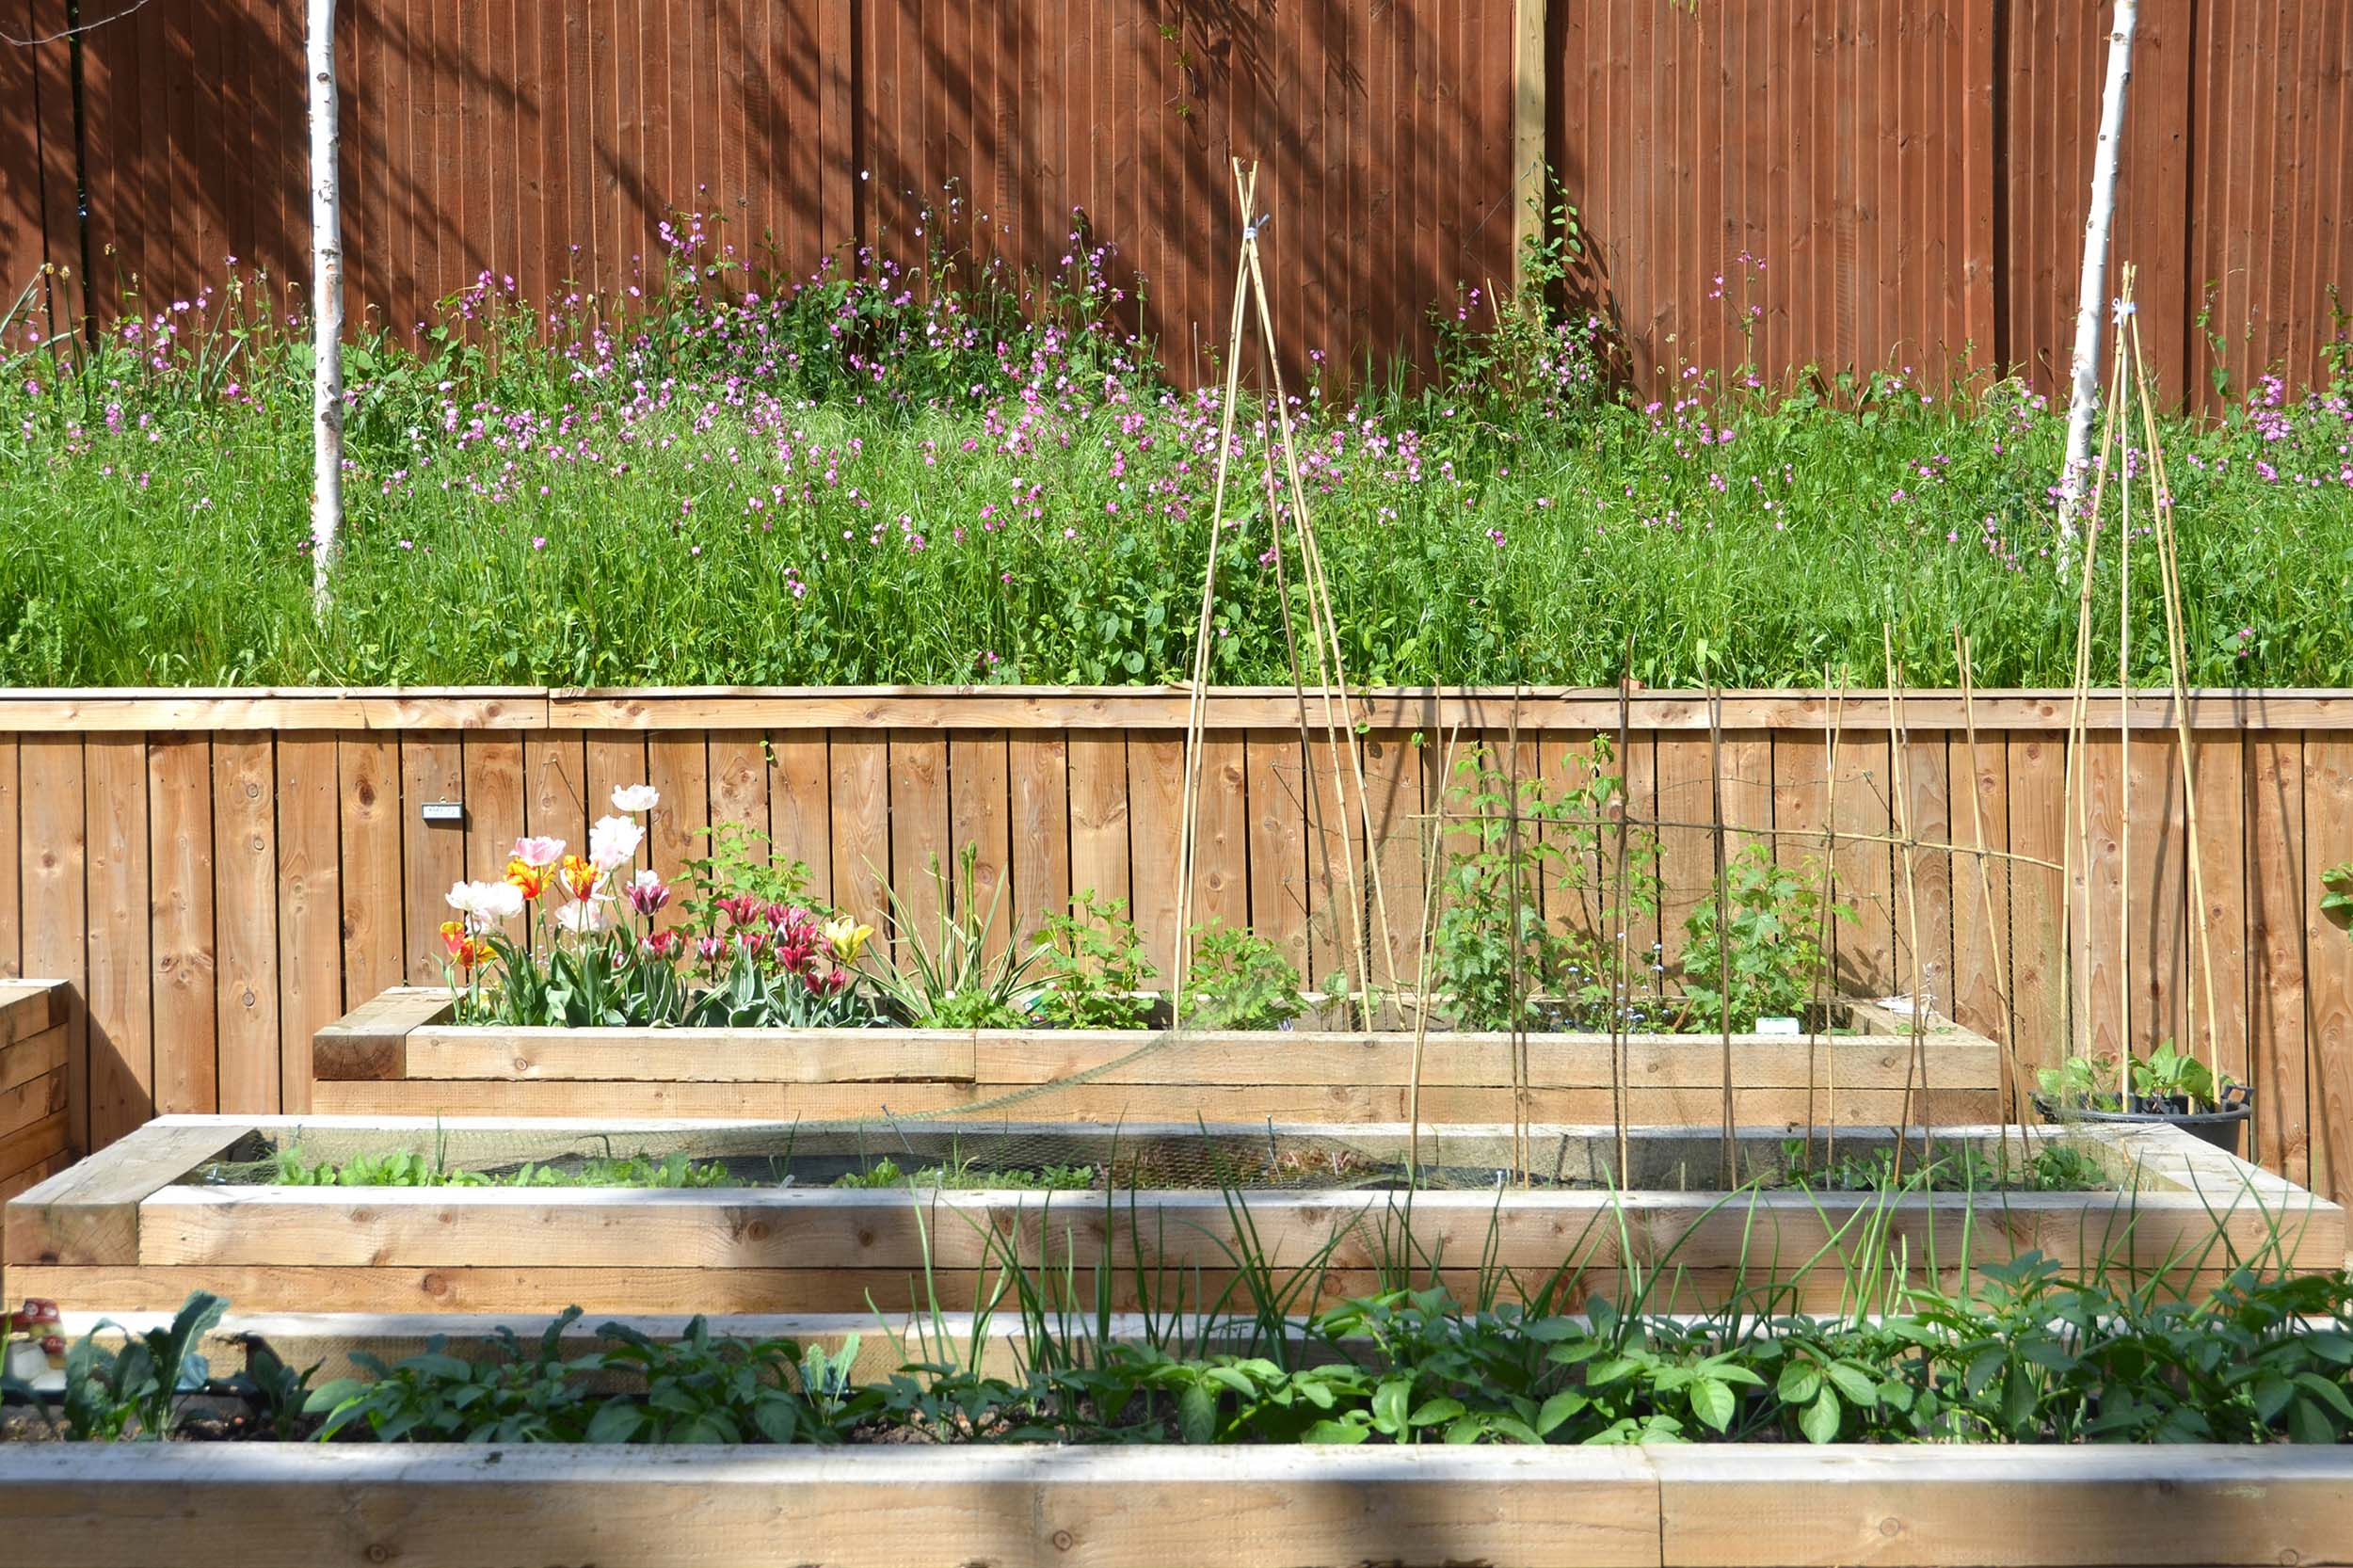 Community allotments at Woodside Square with raised beds for accessibility.